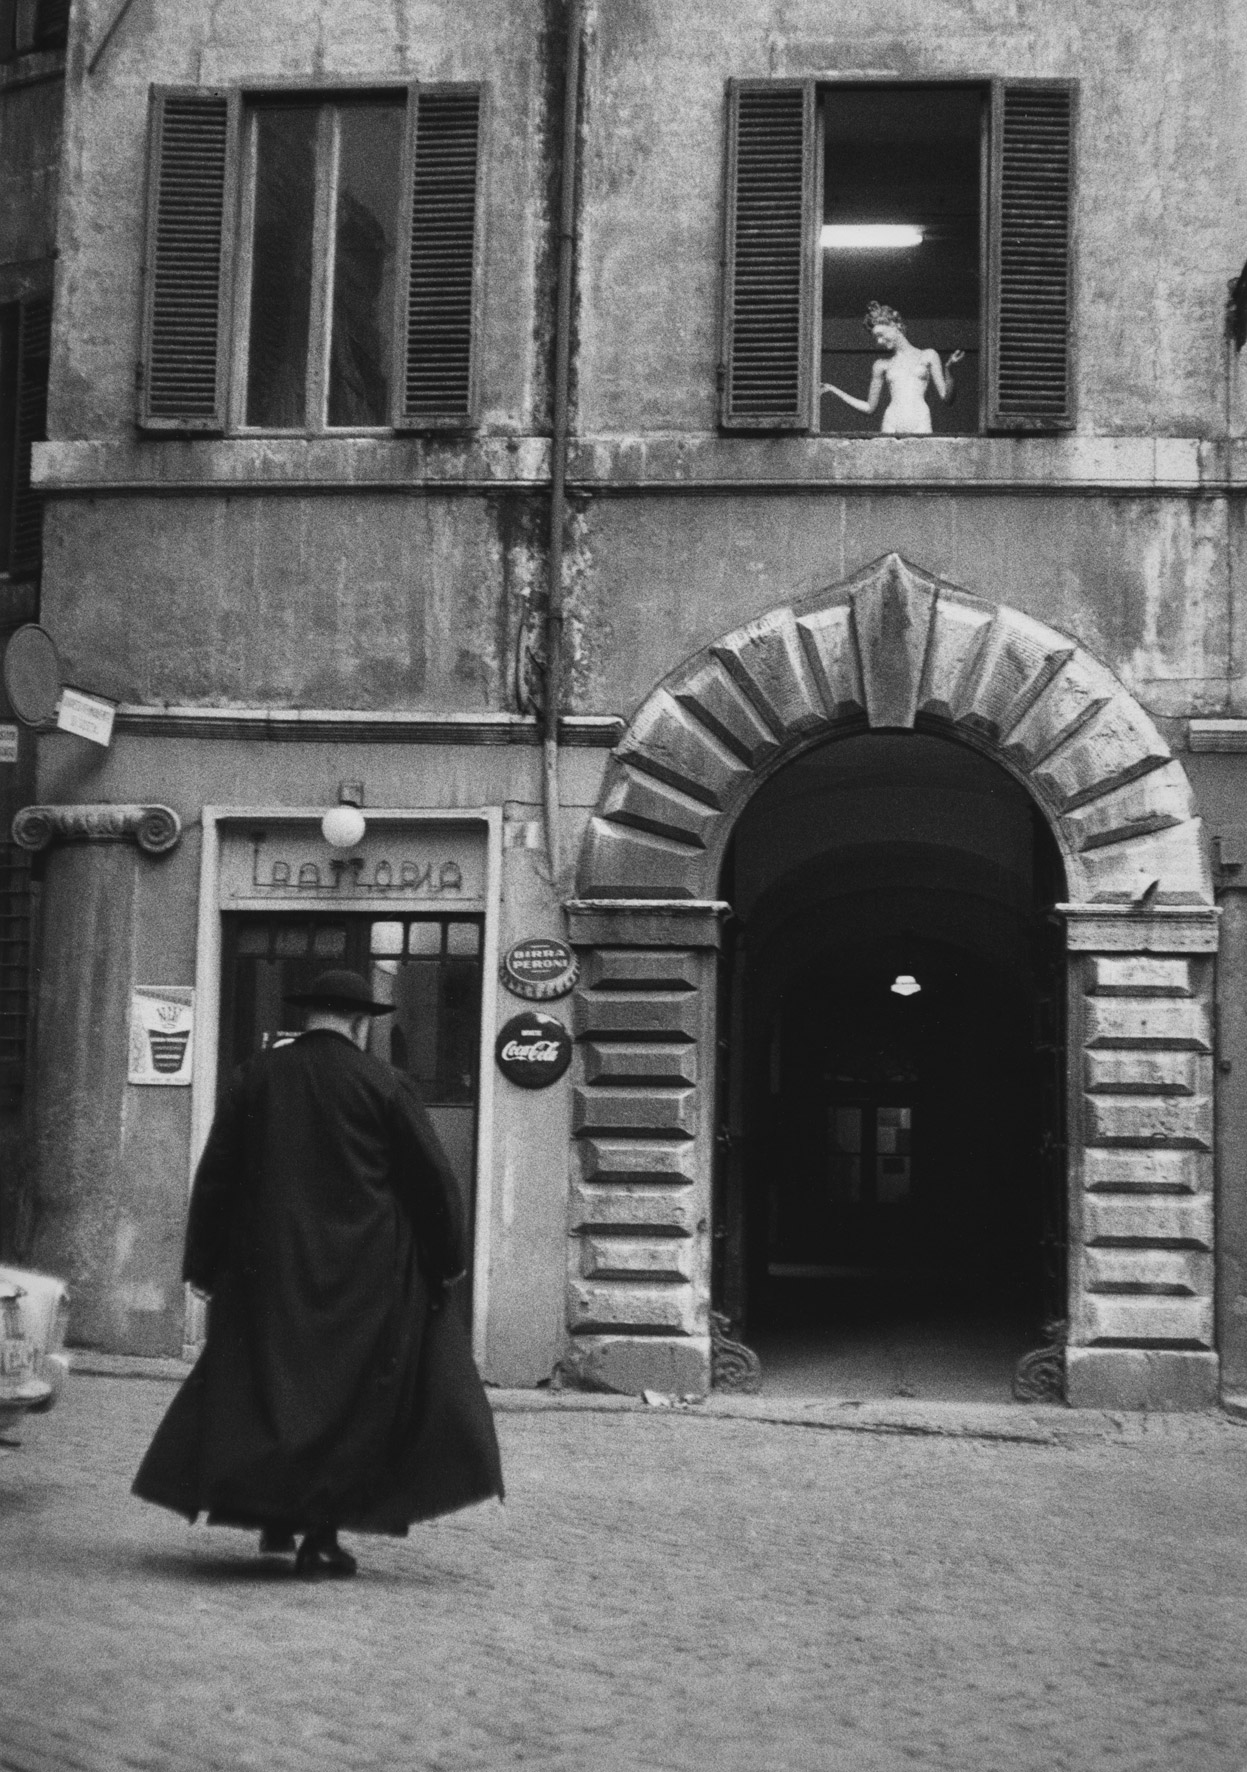 Priest in front of trattoria, Rome, 1957.